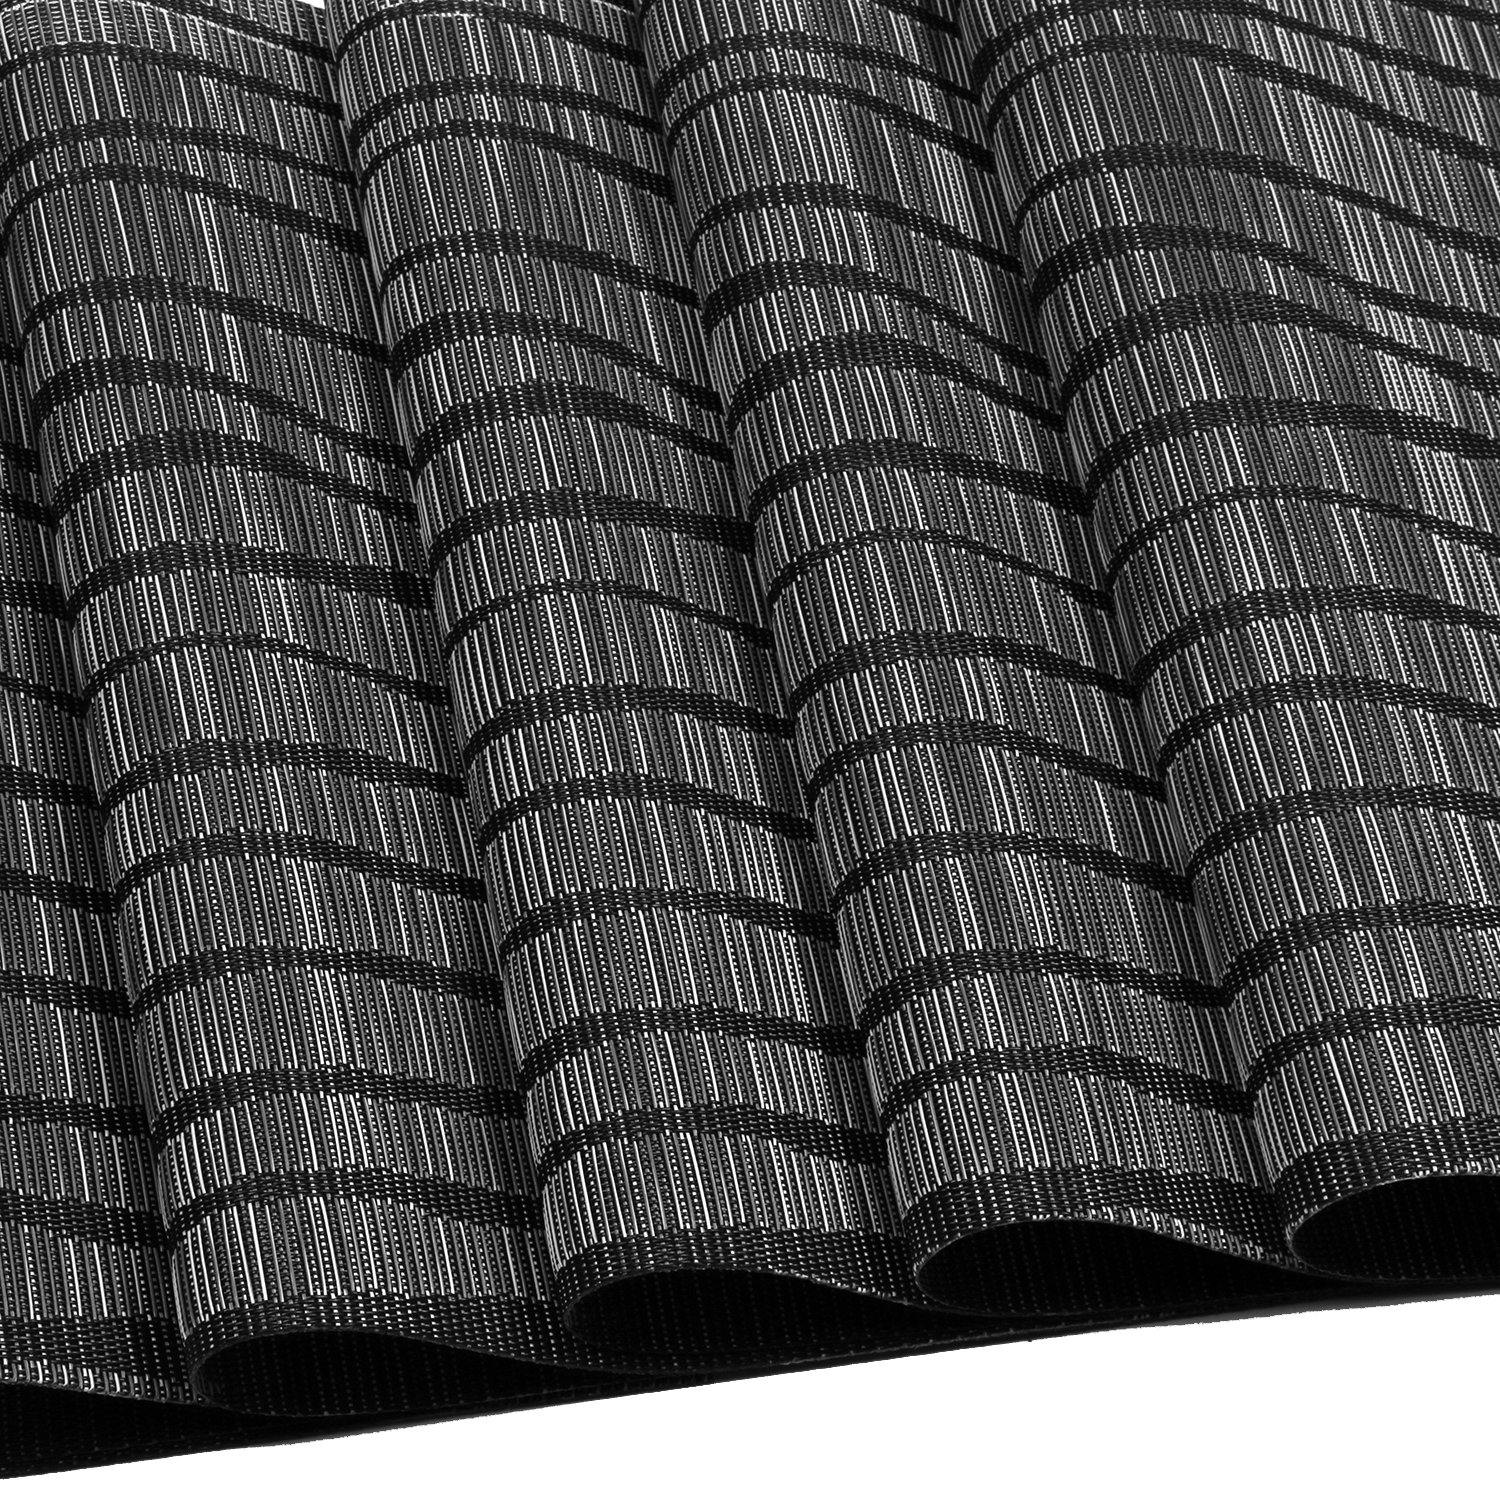 Topotdor Placemats set of 6 PVC Non-slip Insulation Stain-resistant vertical stripes Placemats for Home, Kitchen,Office and Outdoor (Set of 6, Black) by Topotdor (Image #4)